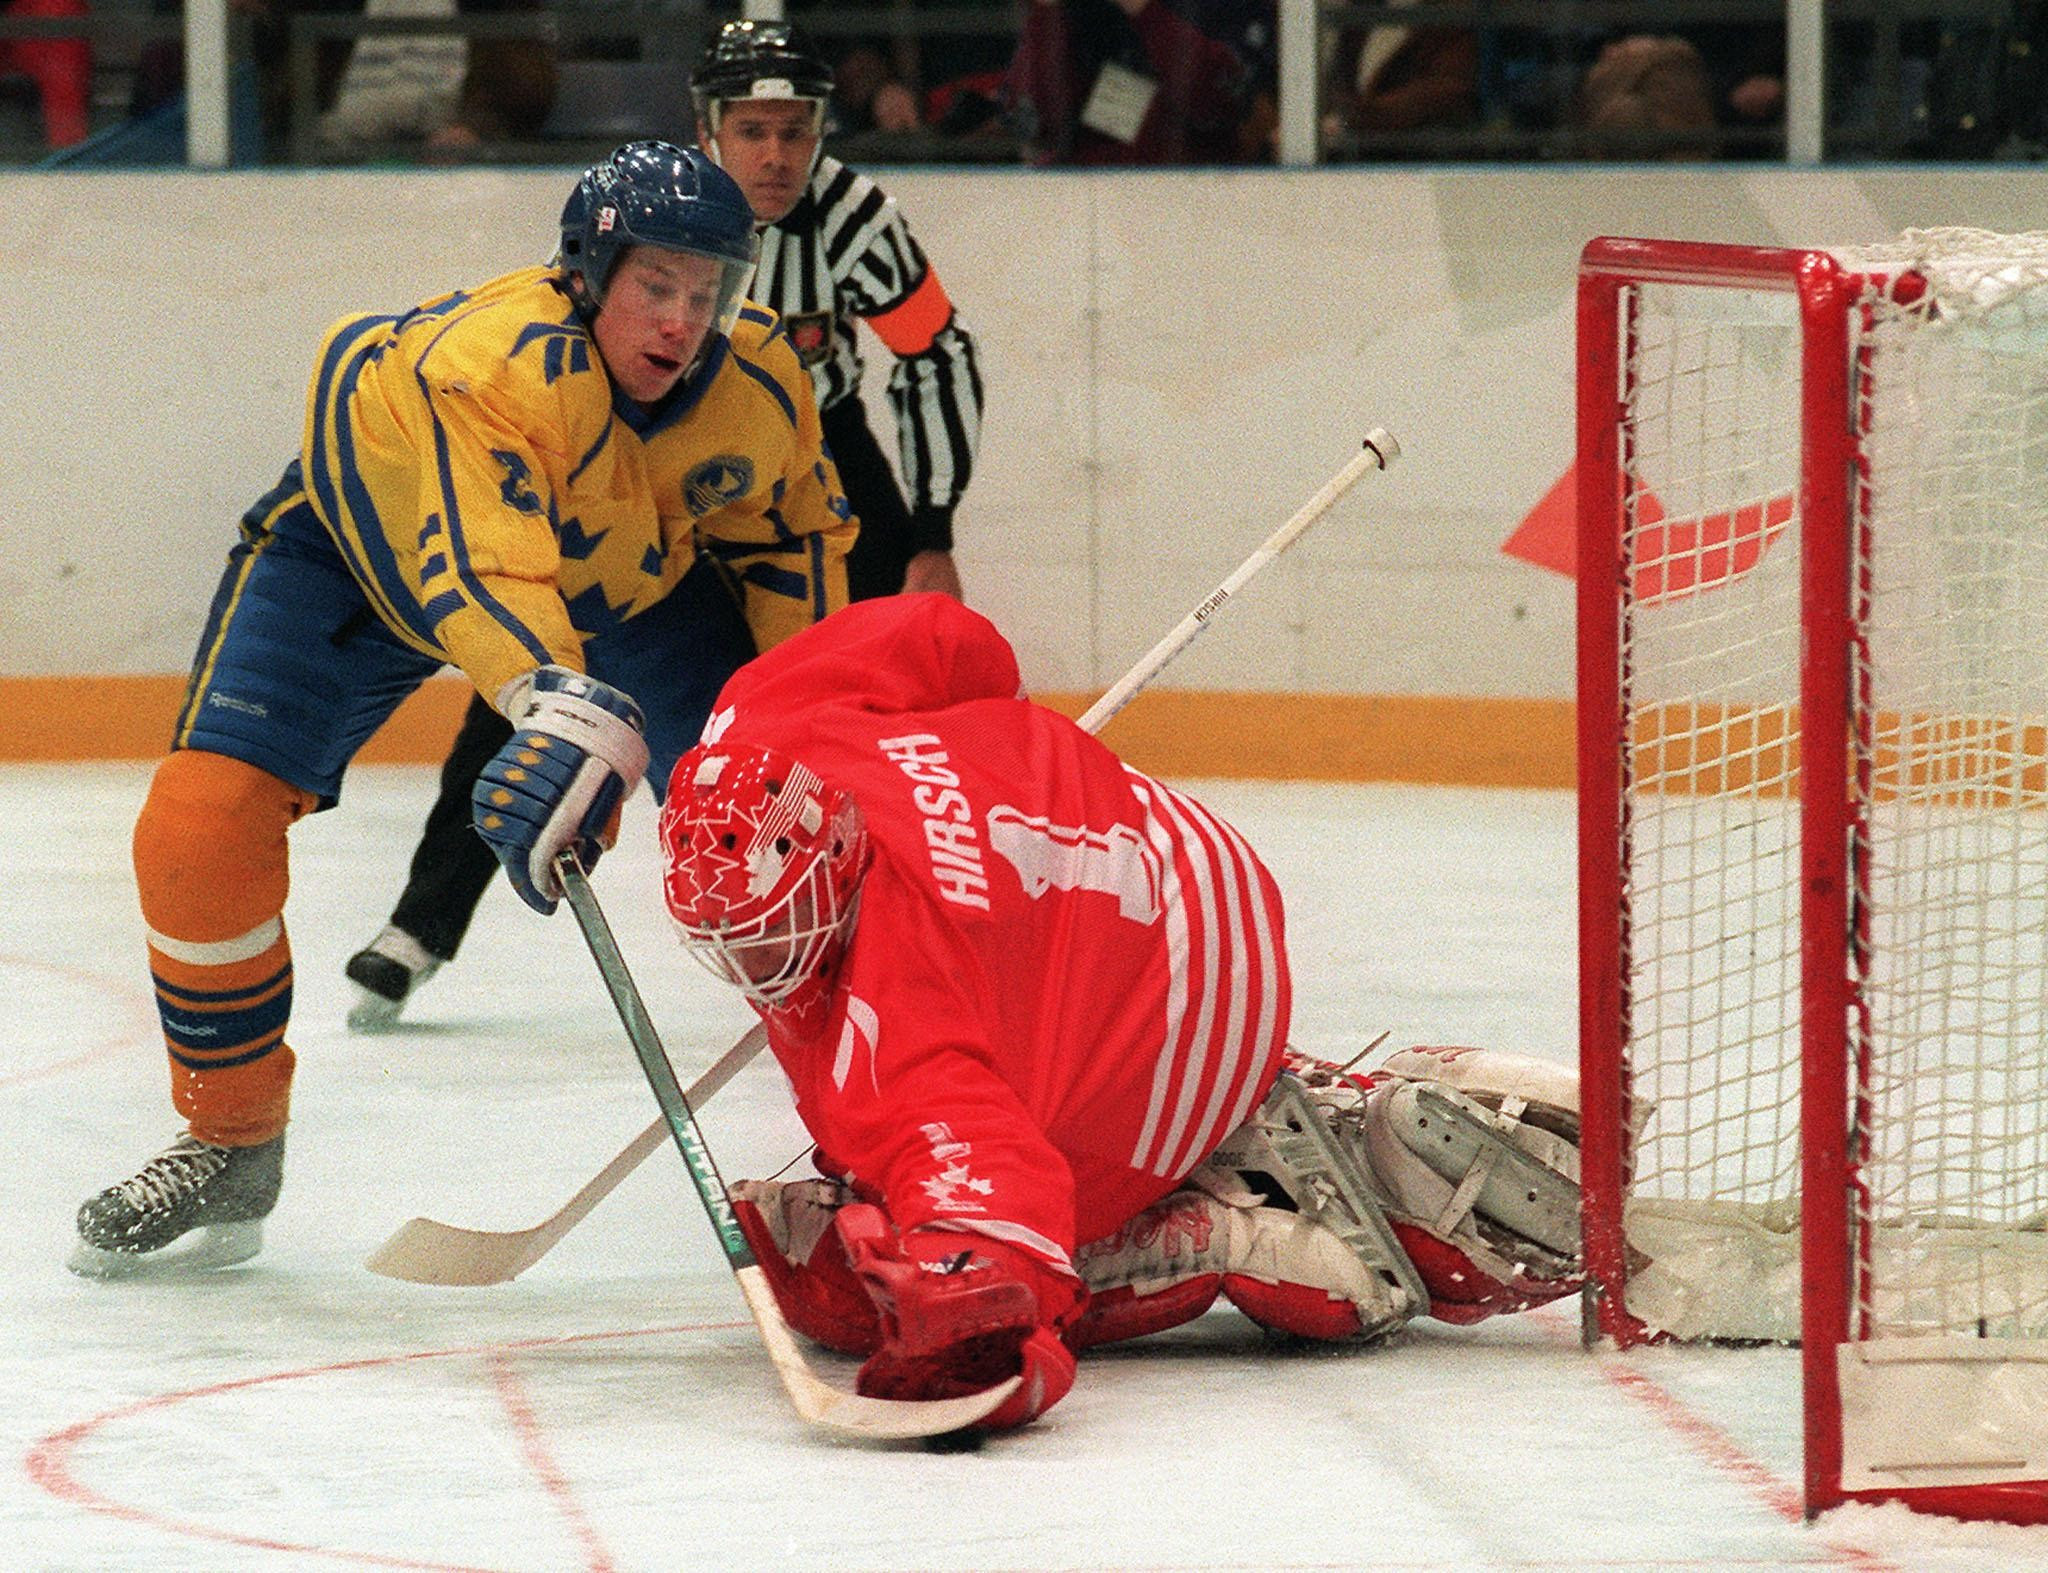 Lillehammer 1994 was the last Olympic men's ice hockey competition with no NHL participation ©Getty Images